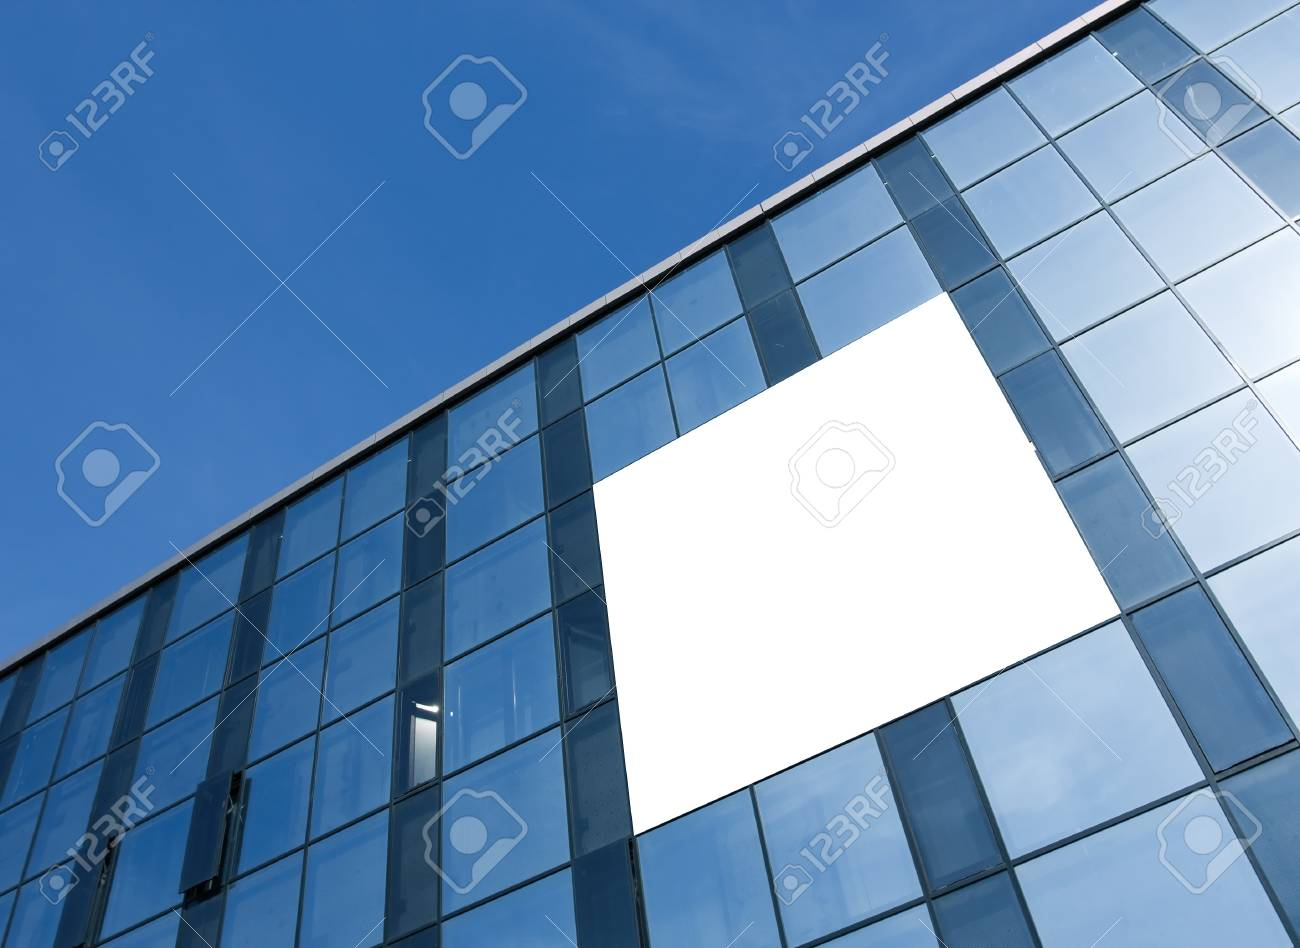 transparent glass wall with blank placard of skyscraper Stock Photo - 7971031